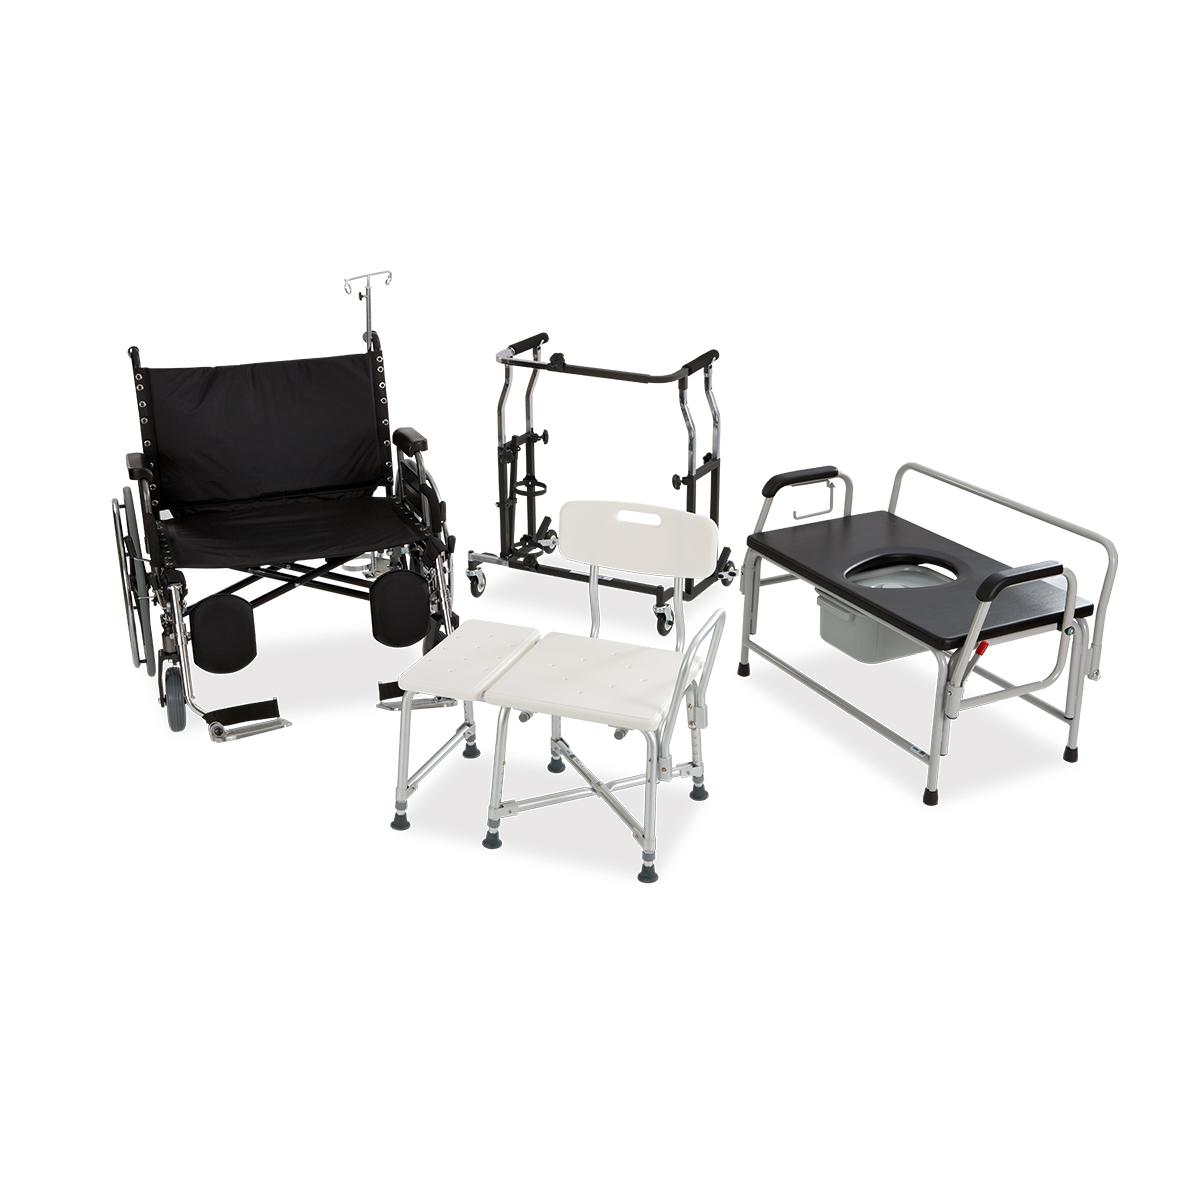 Group of Hillrom™ bariatric accessories including wheelchair, shower bench, commode and walker